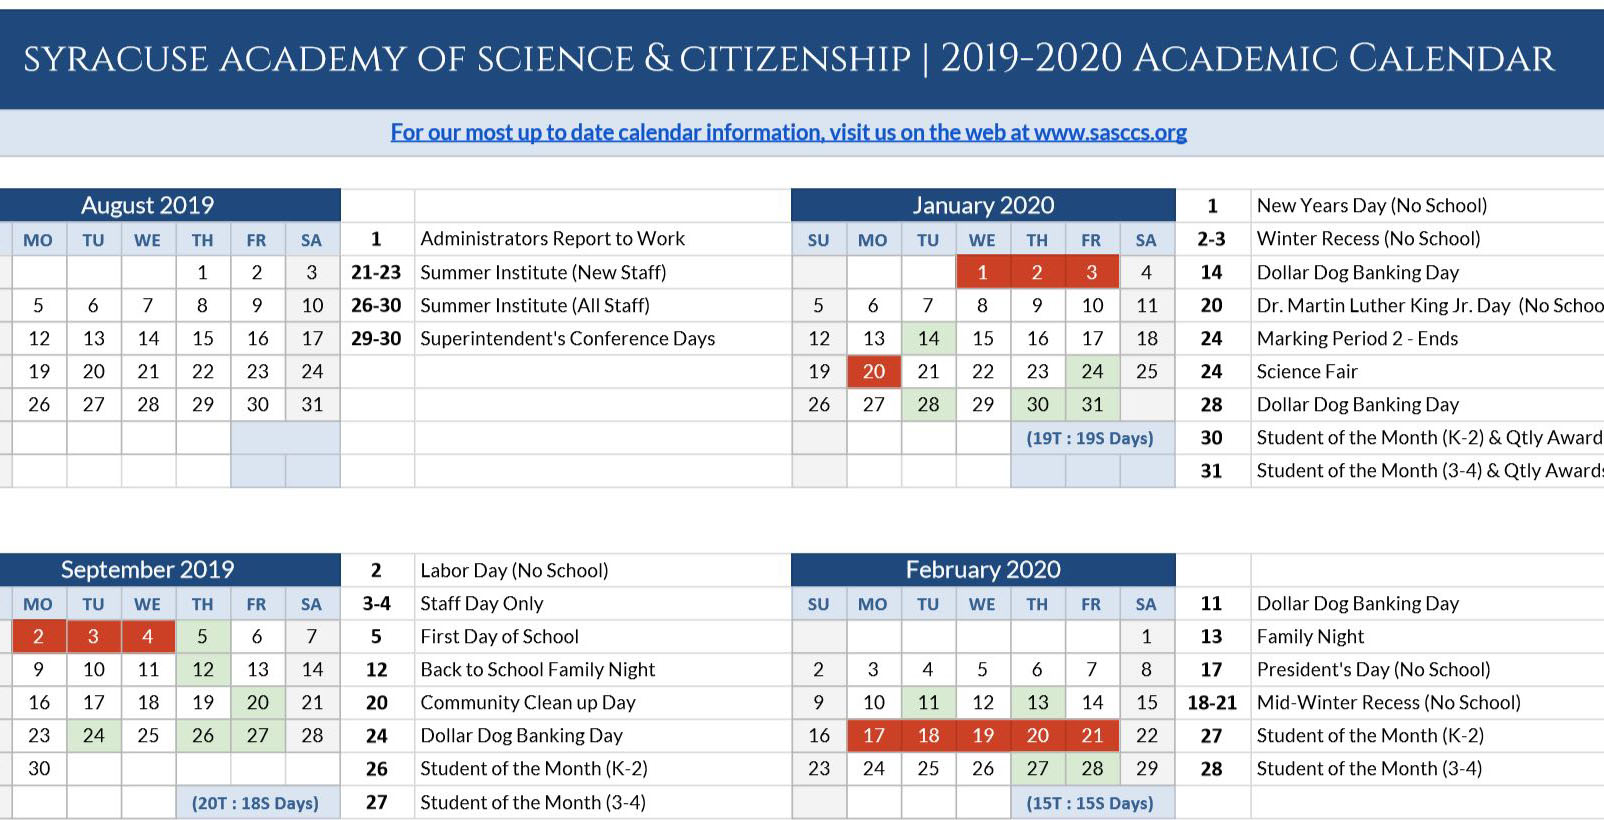 Visit the Academic Calendar page on our website to download a copy of the 2019 - 2020 Academic Calendar